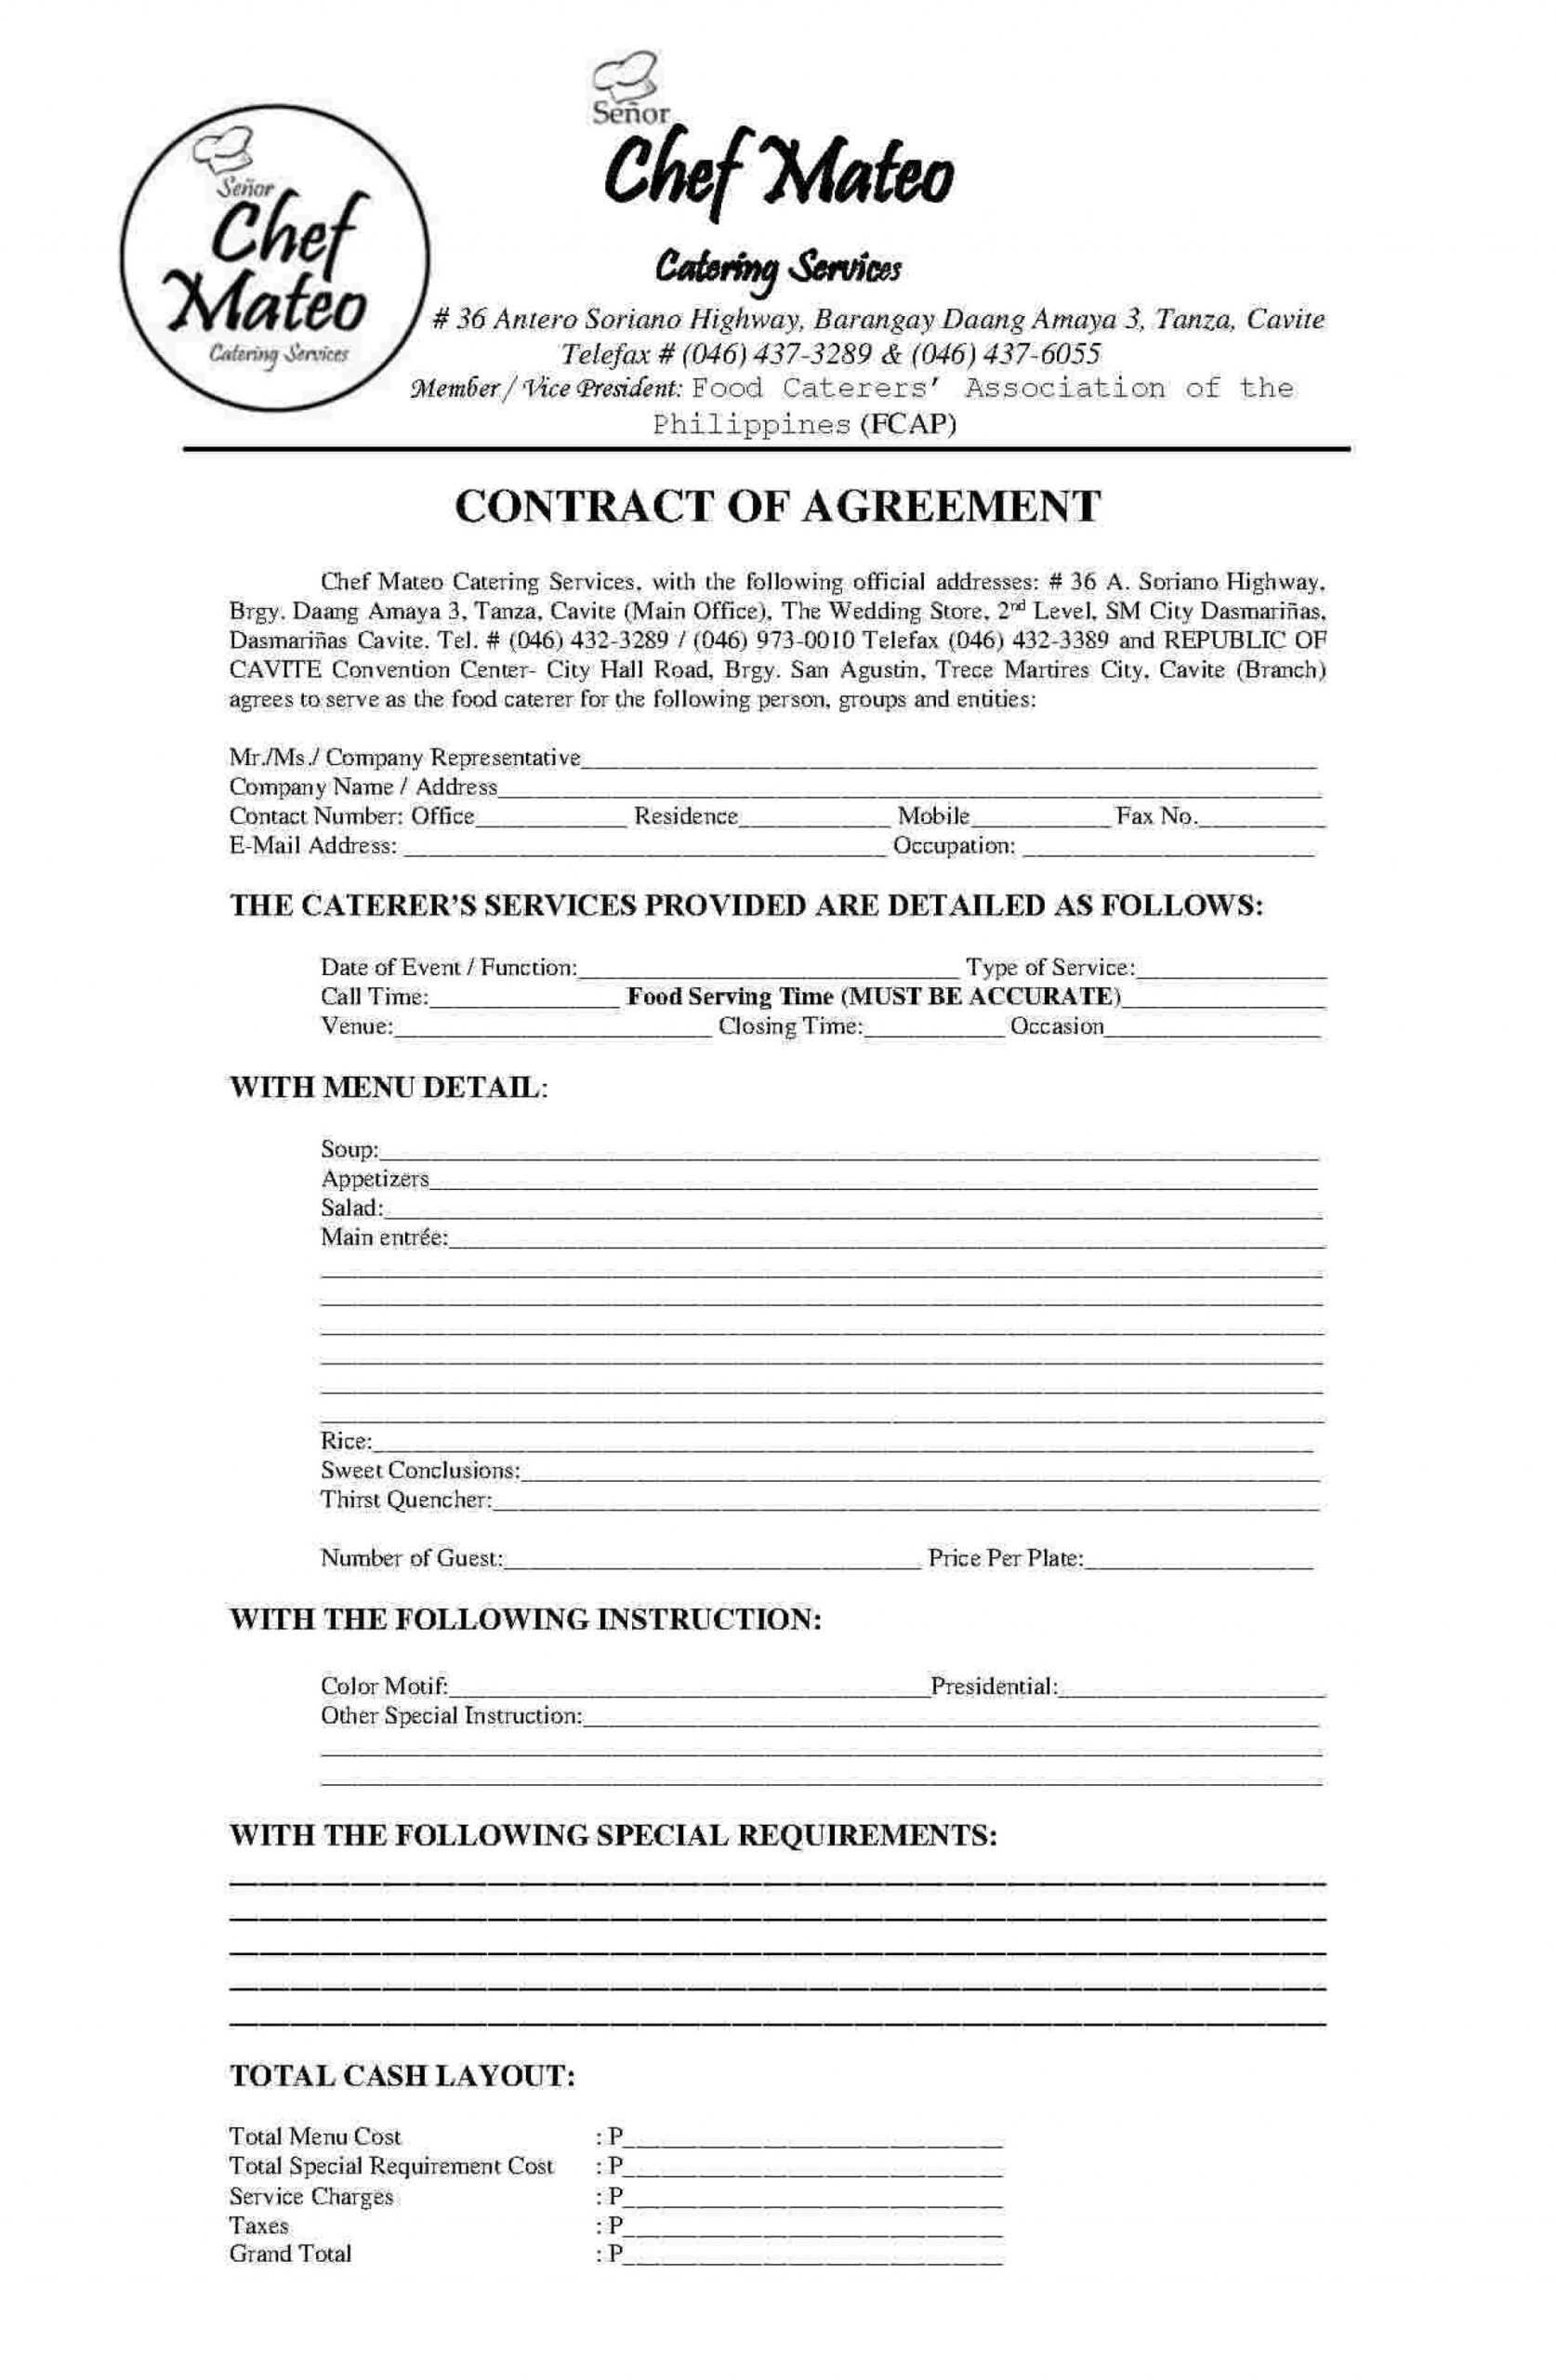 Excellent Catering Contract Template Free Ideas Uk Sample Throughout Catering Contract Template Word